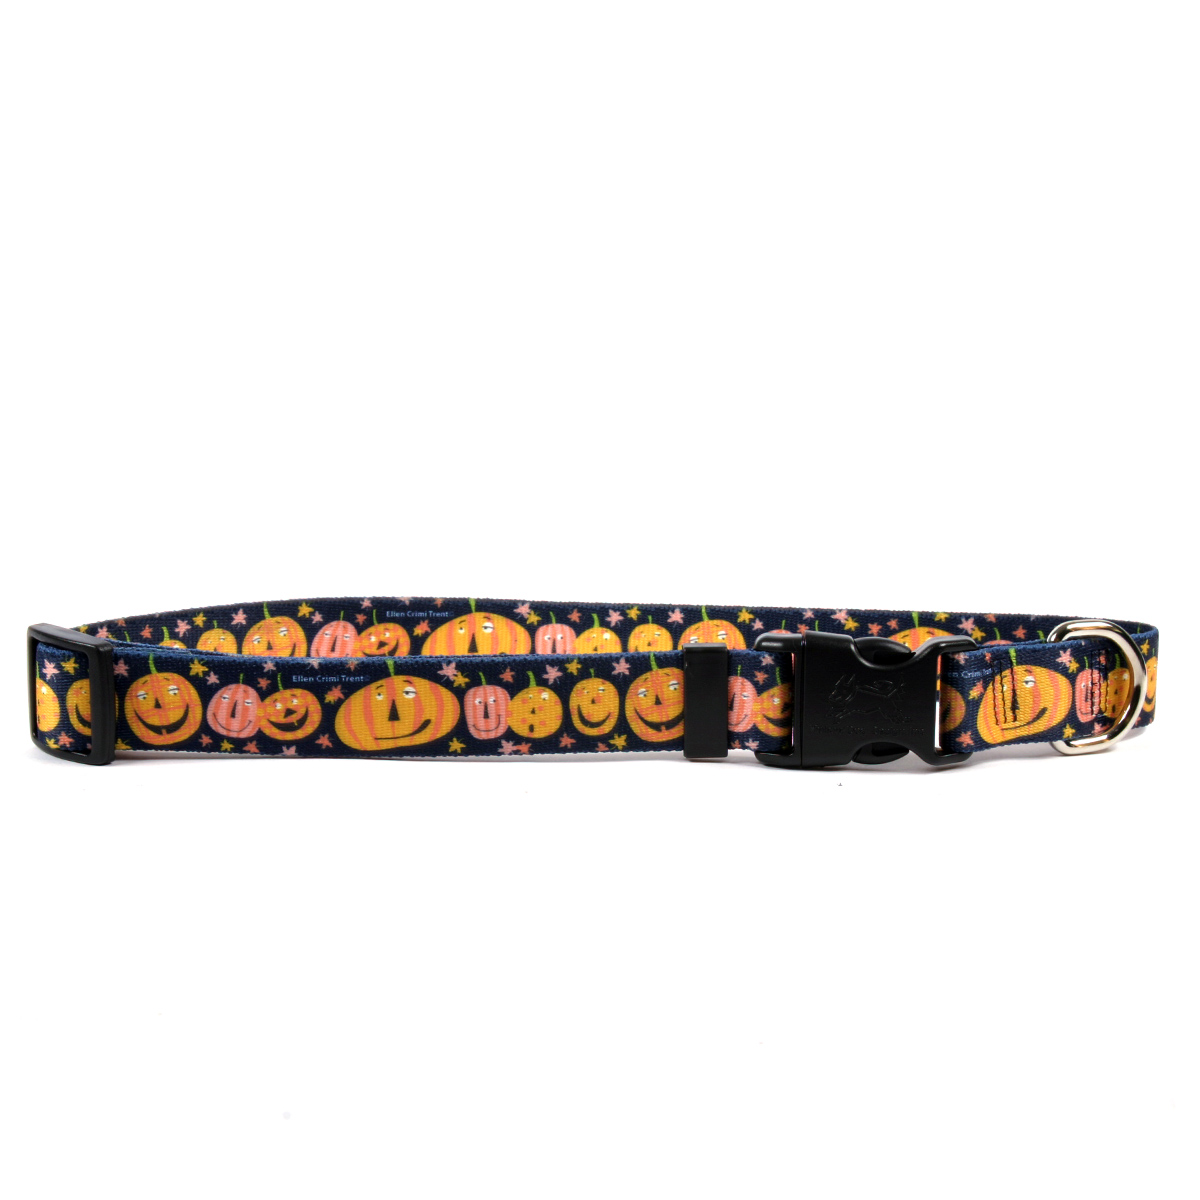 Yellow Dog Design Pumpkin Party Collar, Harness & Leash